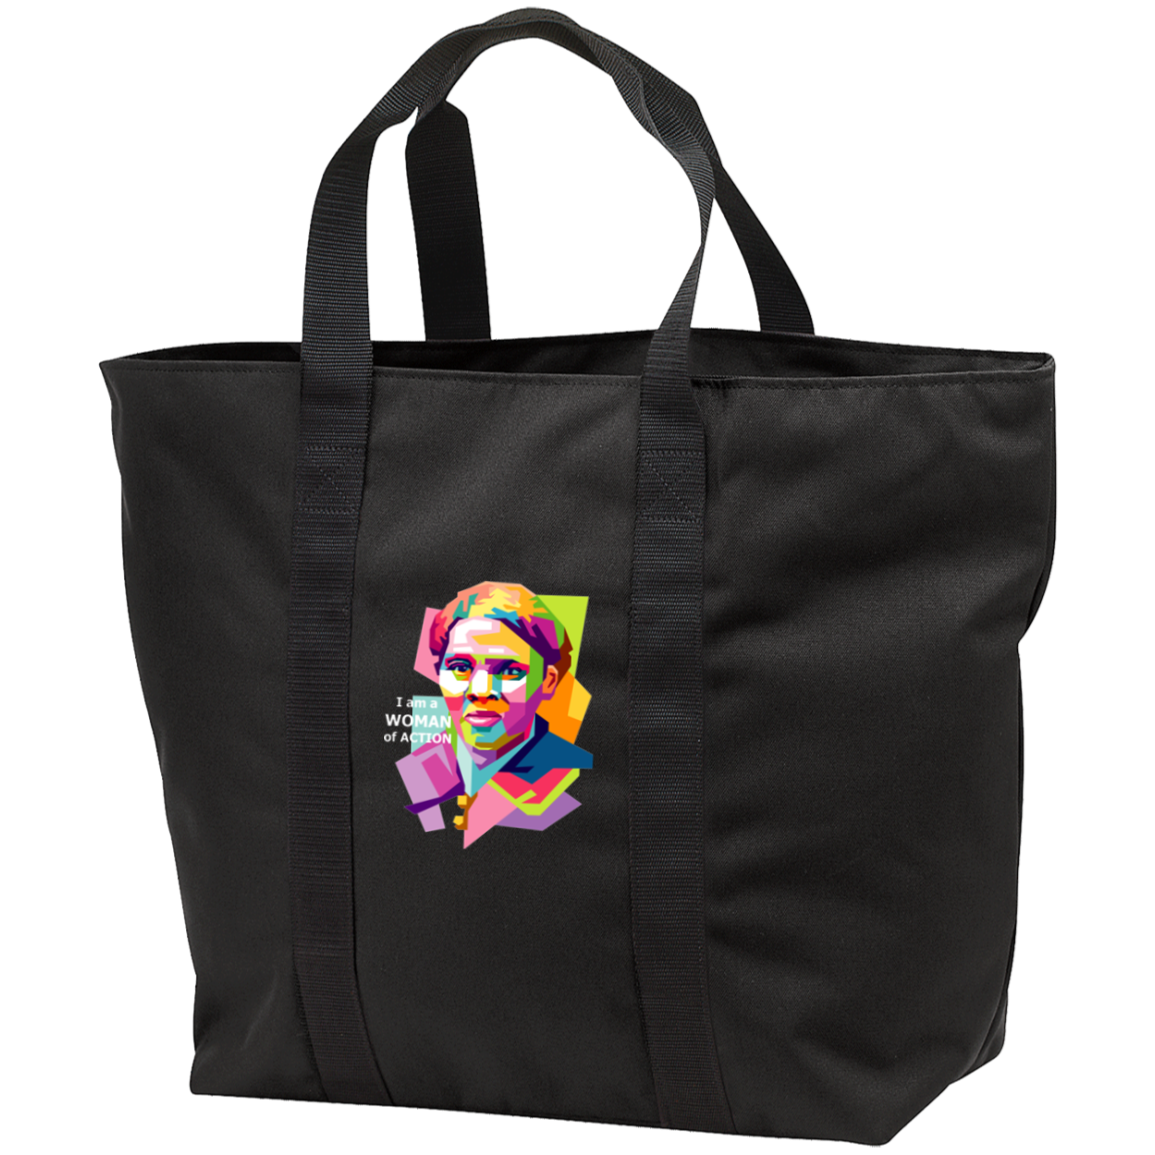 Harriet Tubman: A Woman of Action - All Purpose Tote Bag